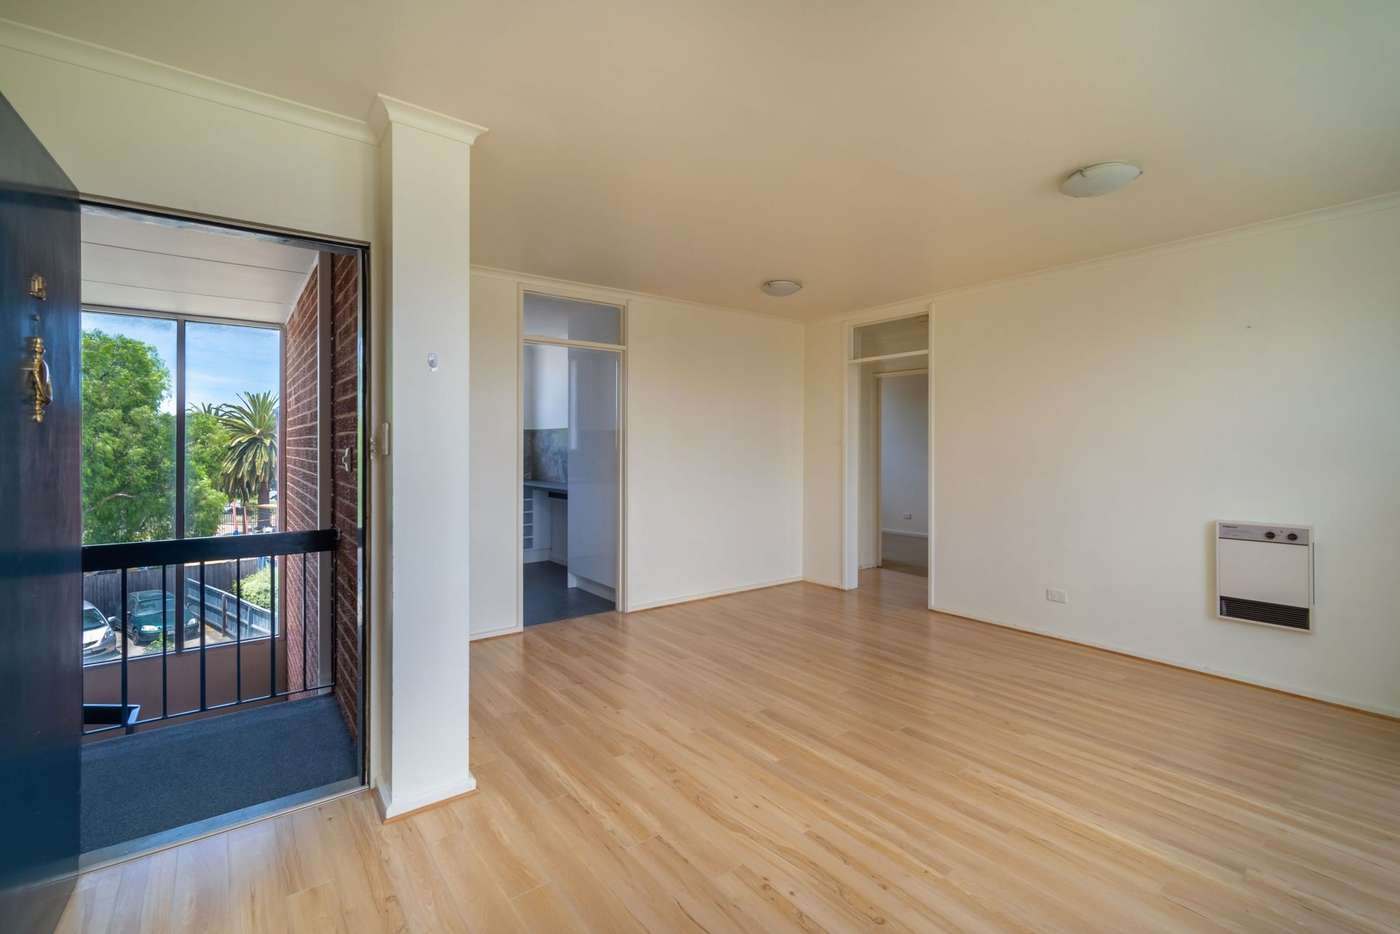 Main view of Homely apartment listing, 15/334 Princes Street, Port Melbourne VIC 3207